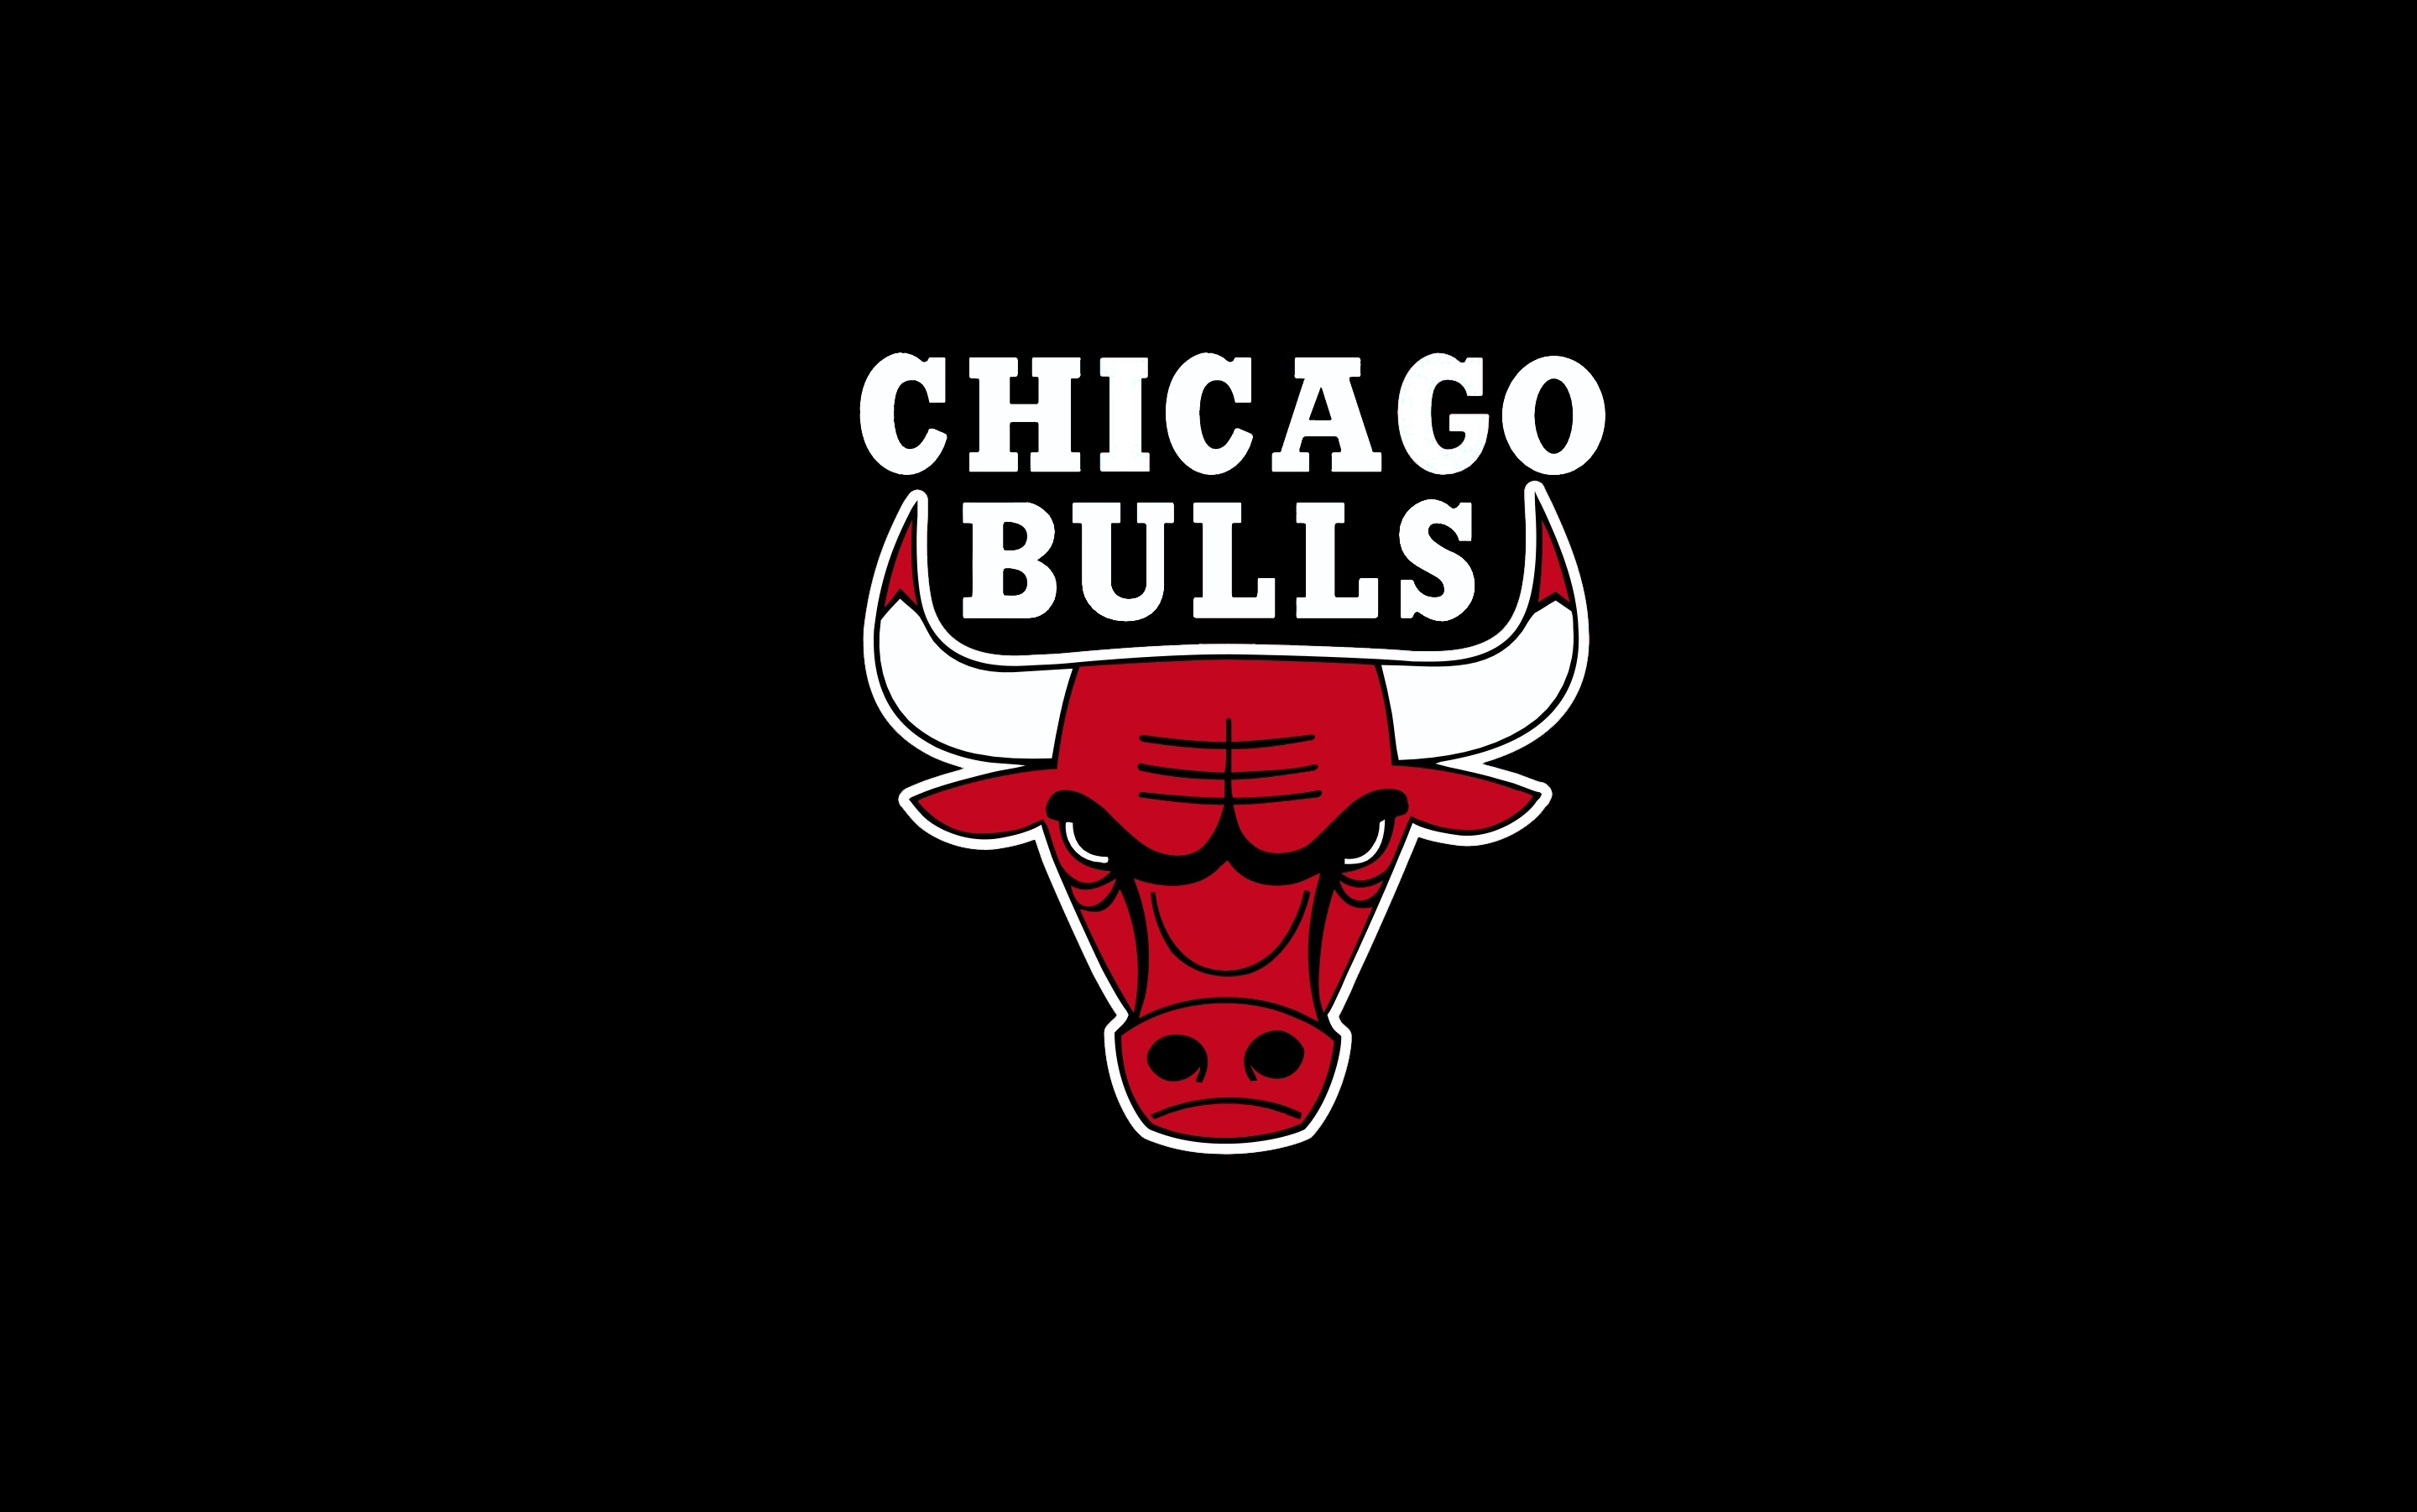 Chicago bulls wallpaper windy city wallpapersafari chicago bulls windy city chicago bulls wallpaper windy voltagebd Images